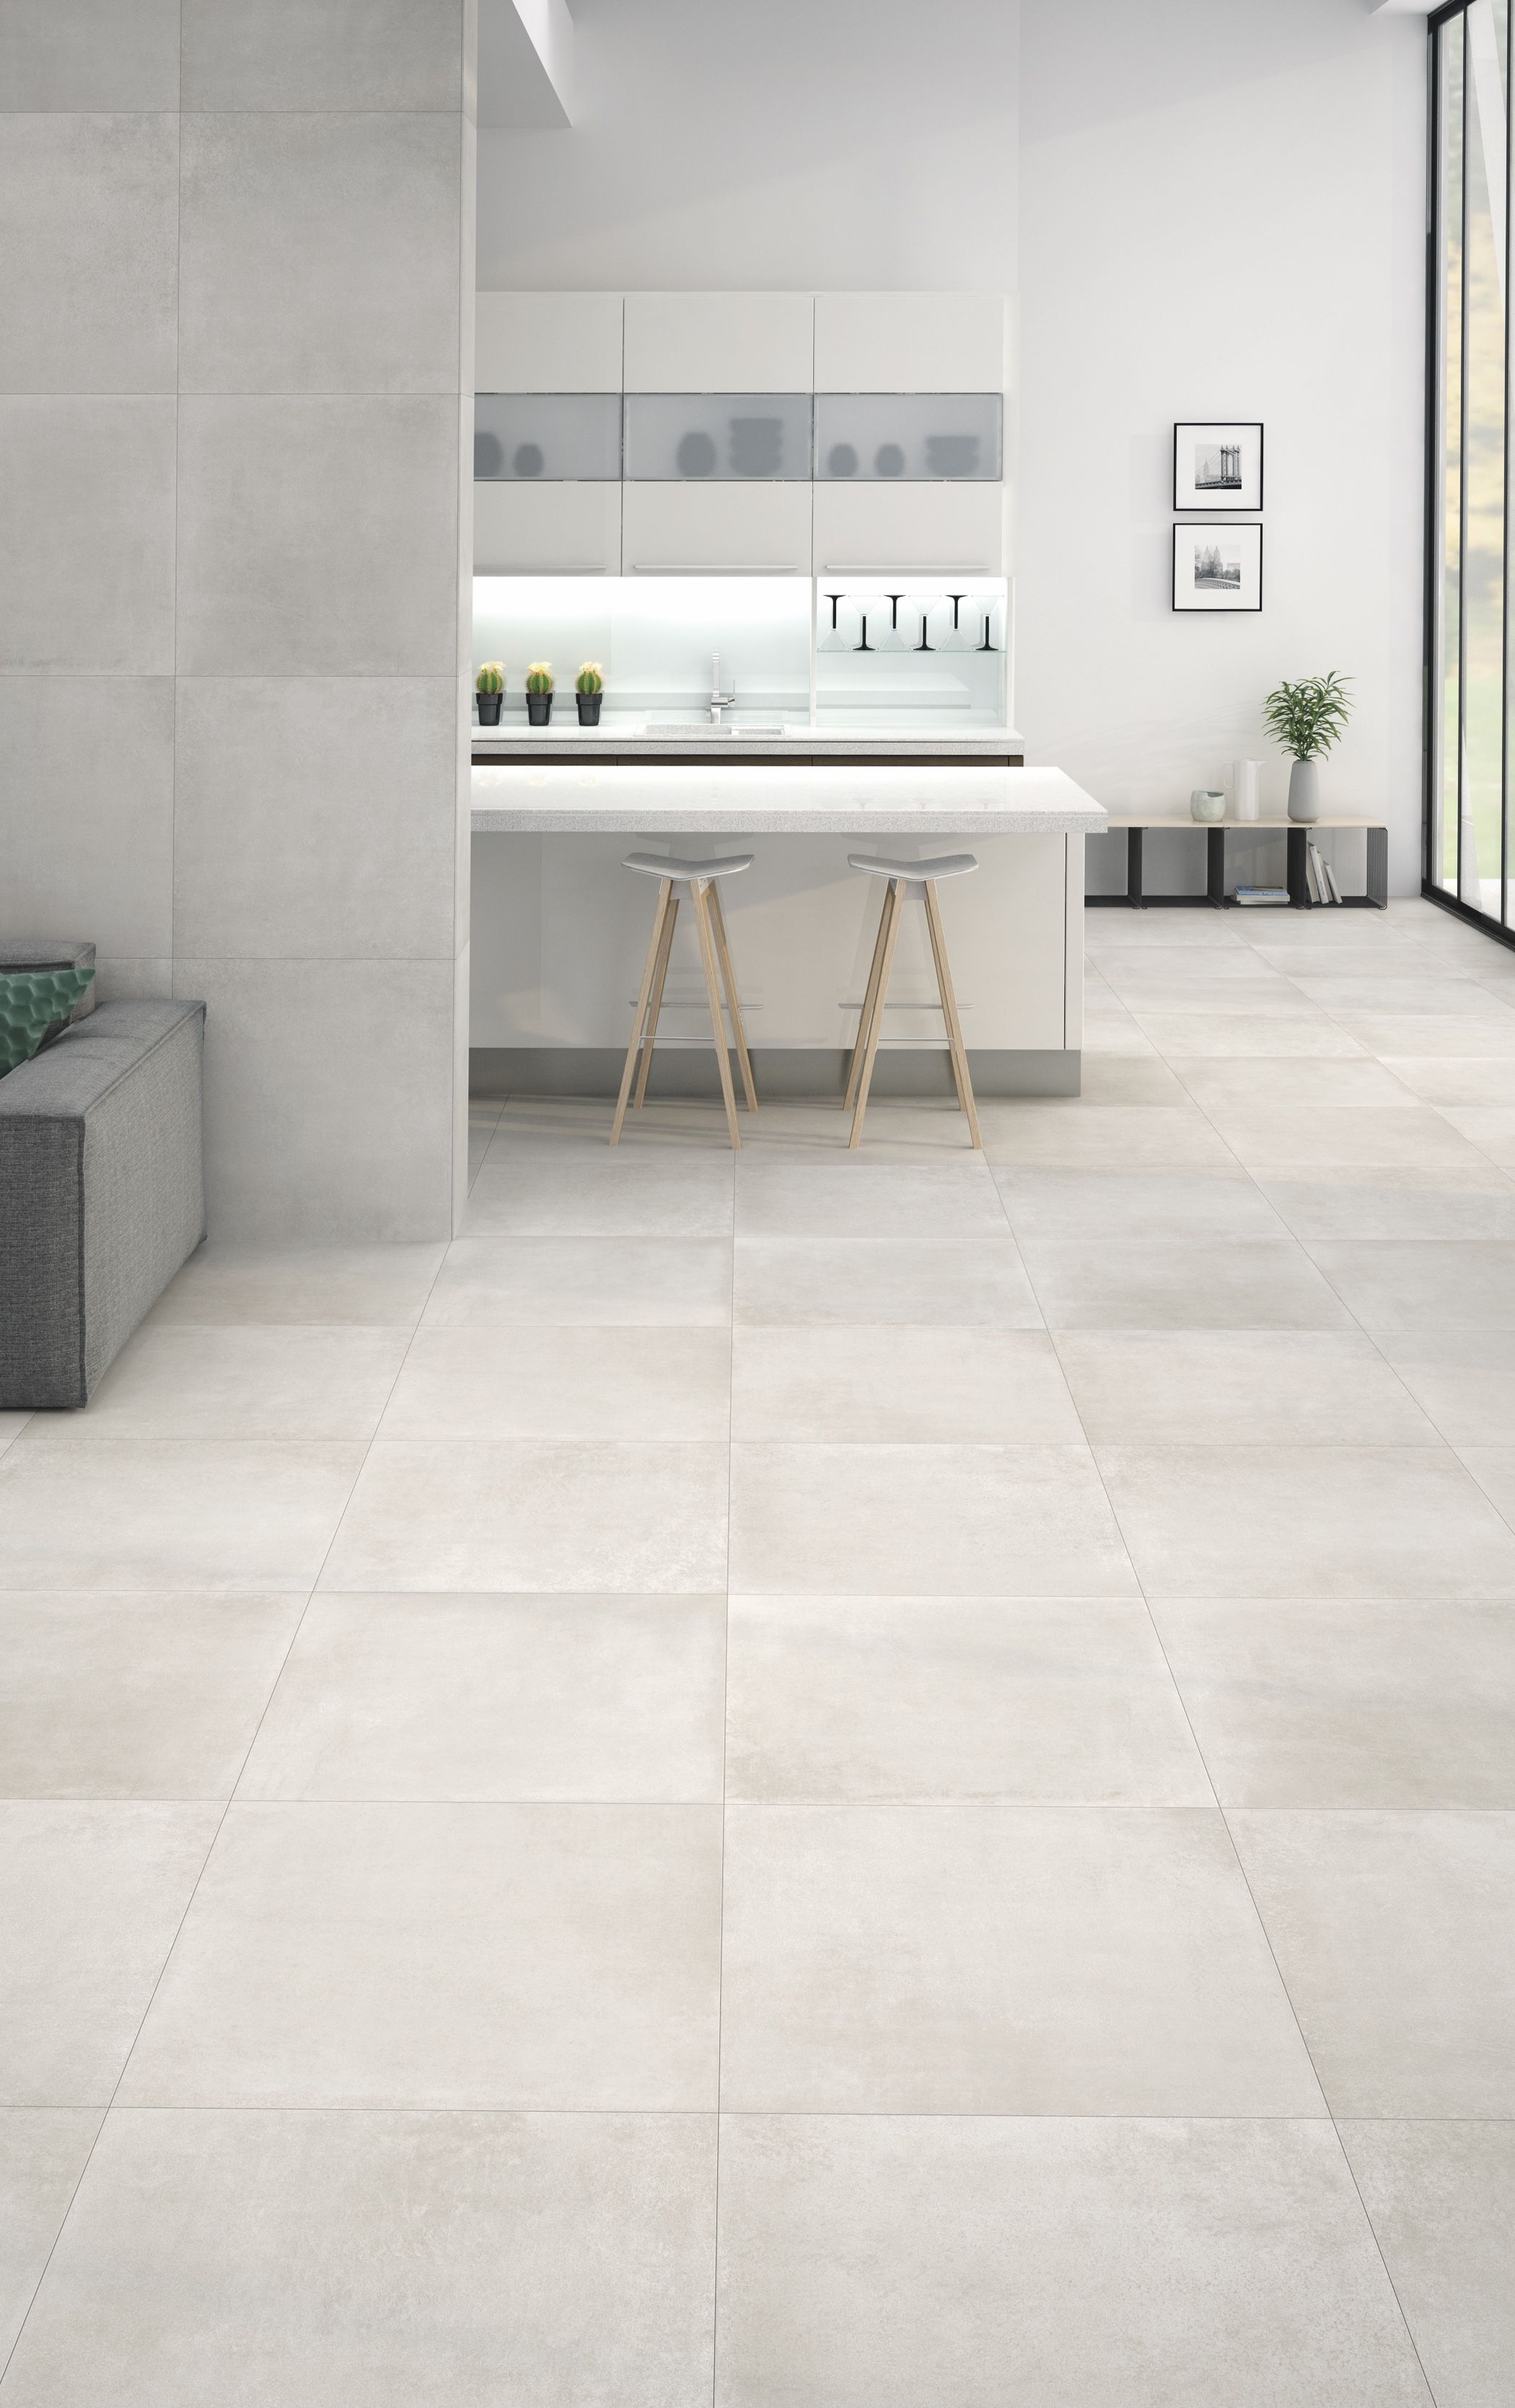 Chez Inui Pro Inui Inuiservices Constructa Inuiconstructa Collection Muse Carreaux Tiles Fliesen Carrelage Carrelages Sol Floor Floortile Walle